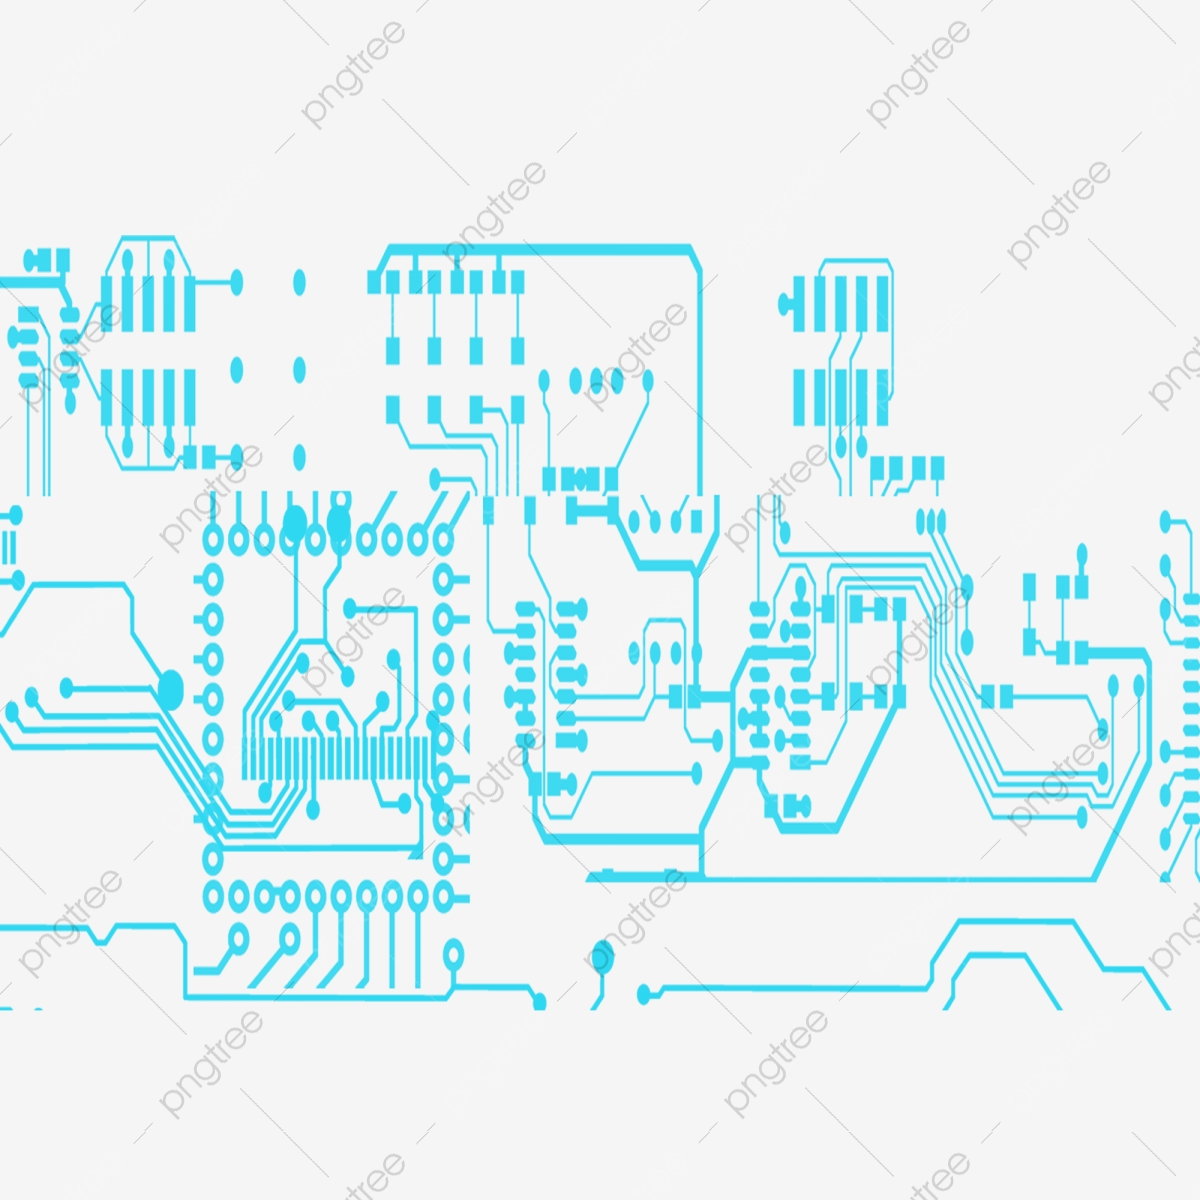 hight resolution of commercial use resource upgrade to premium plan and get license authorization upgradenow computer circuit